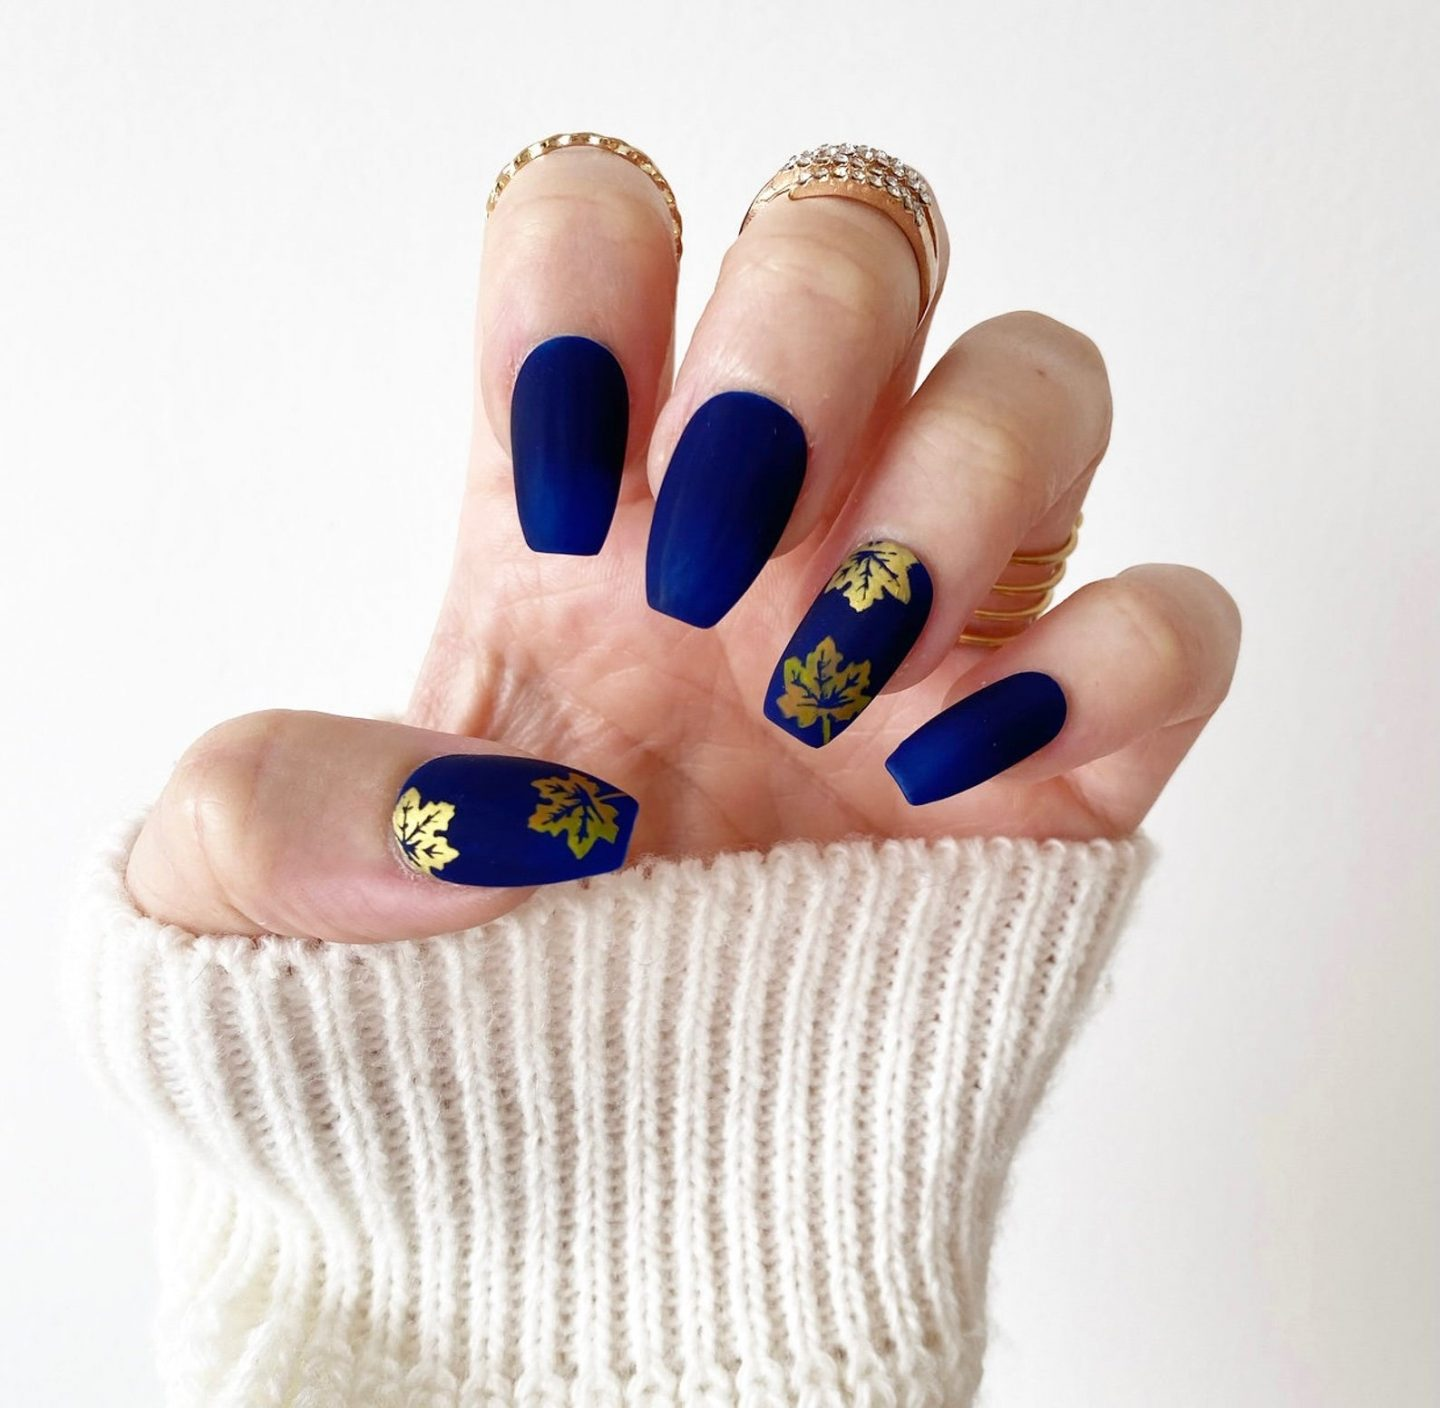 Matte royal blue nails with gold maple leaves